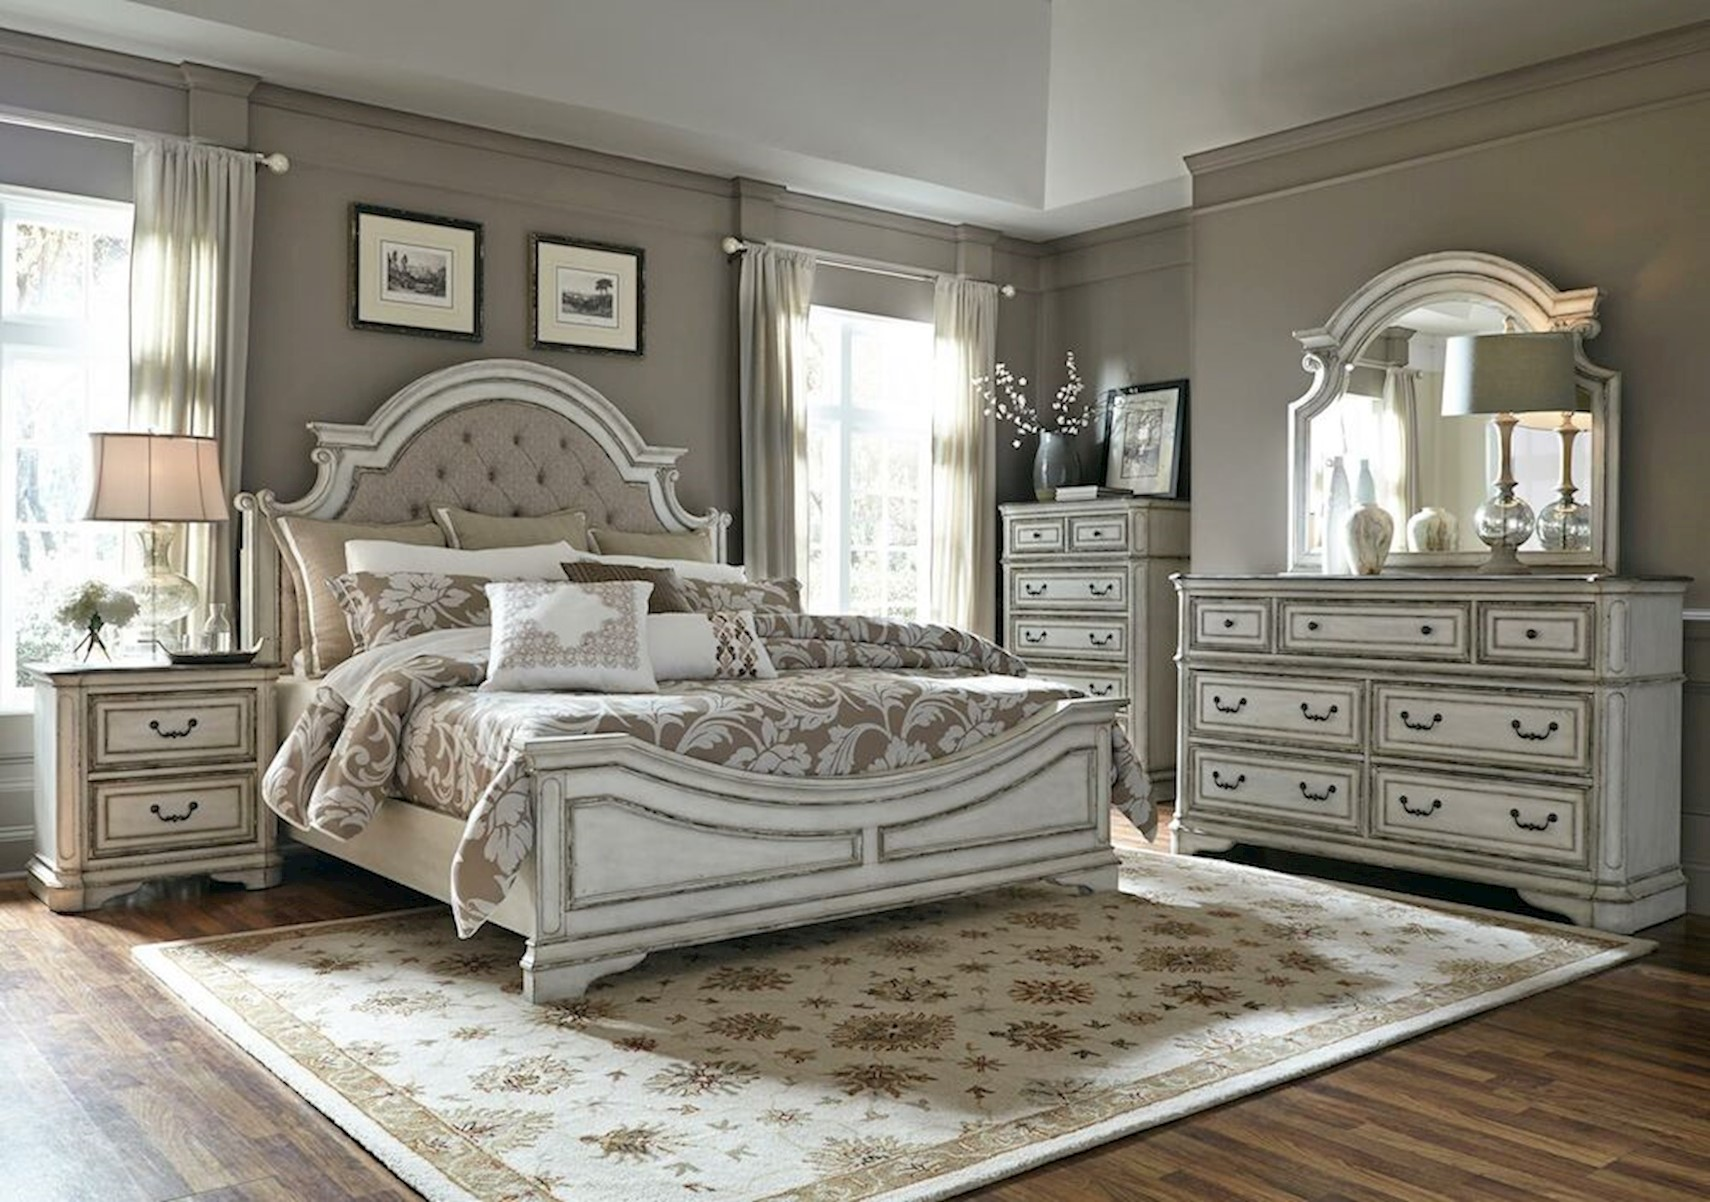 city room queen furniture brown bed value bedroom dark change package packages product set click image piece mosaic to